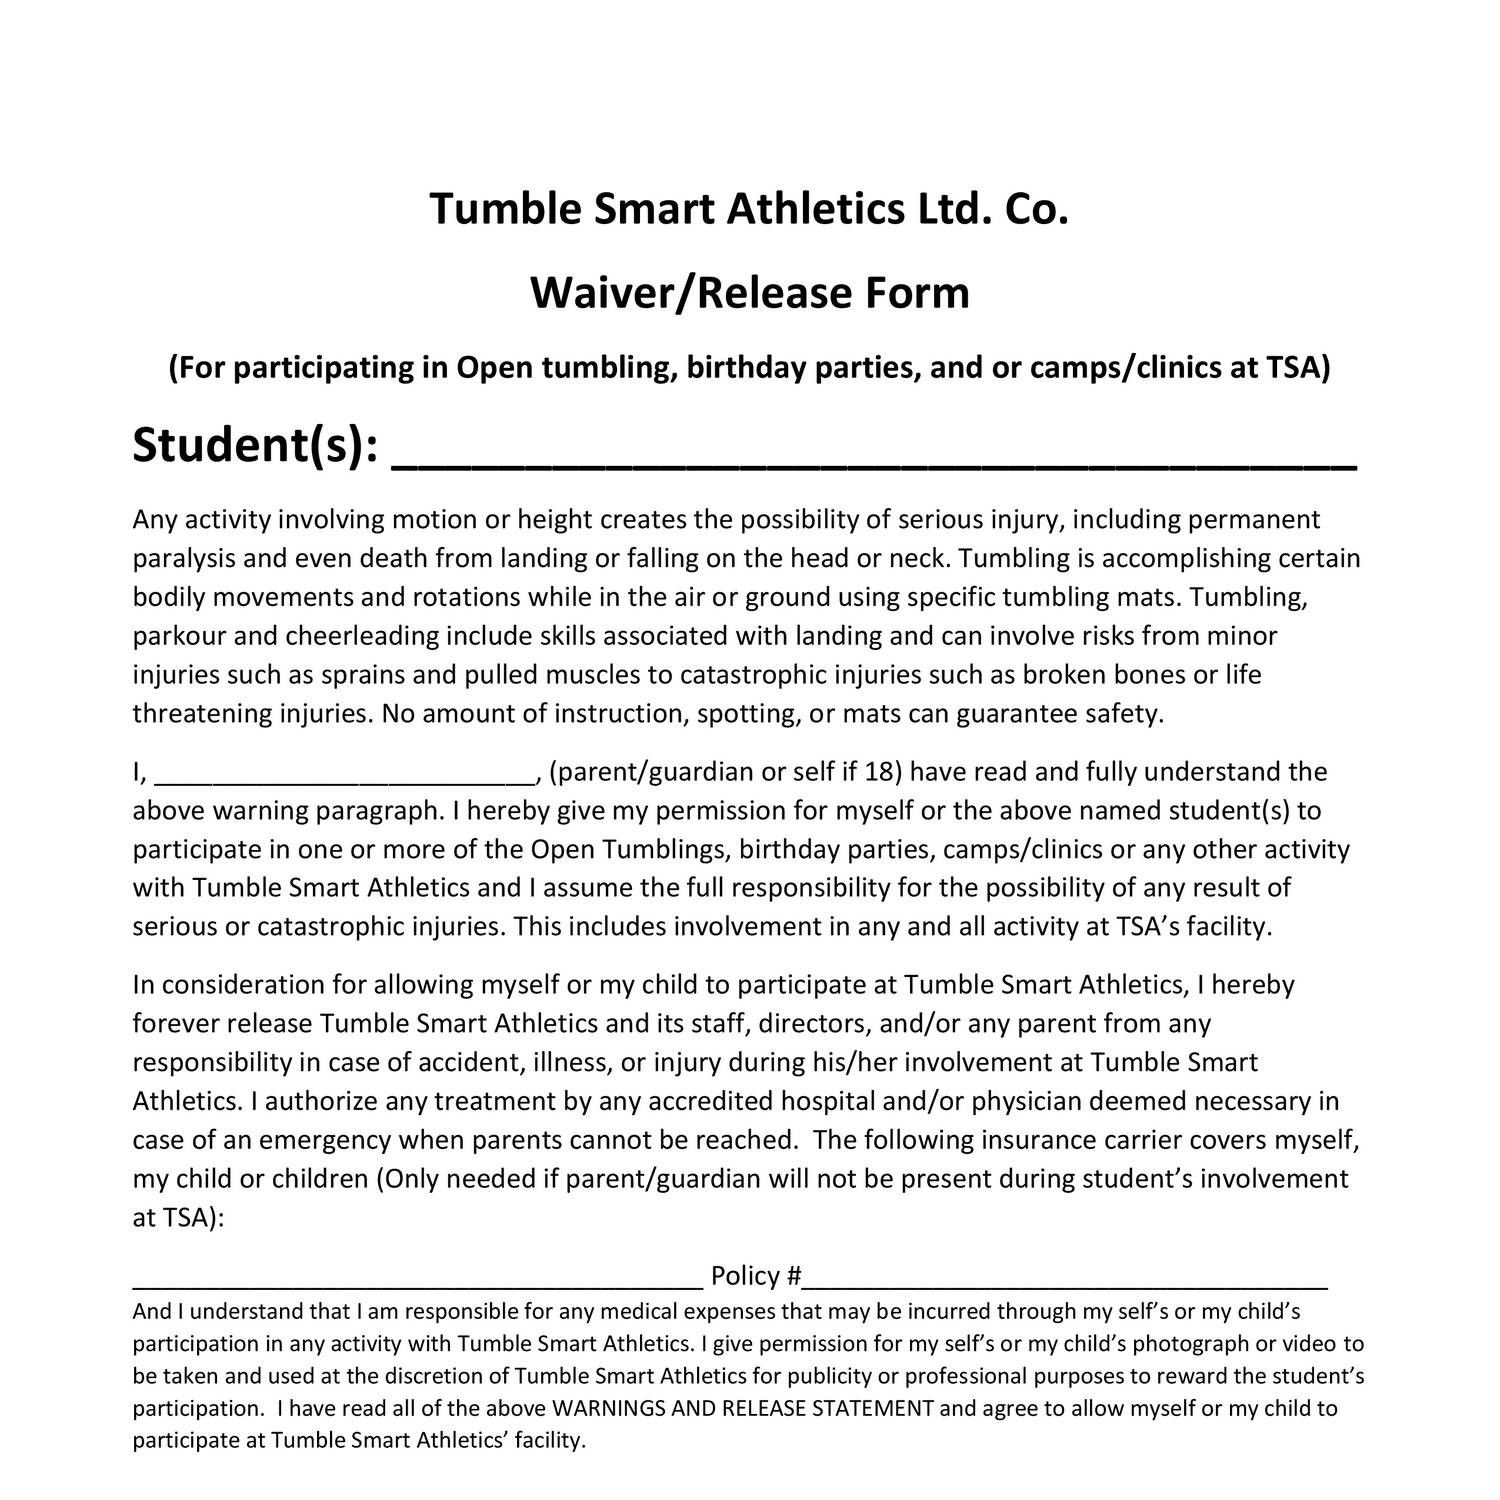 TSA waiver and release of liability form.docx - DocDroid